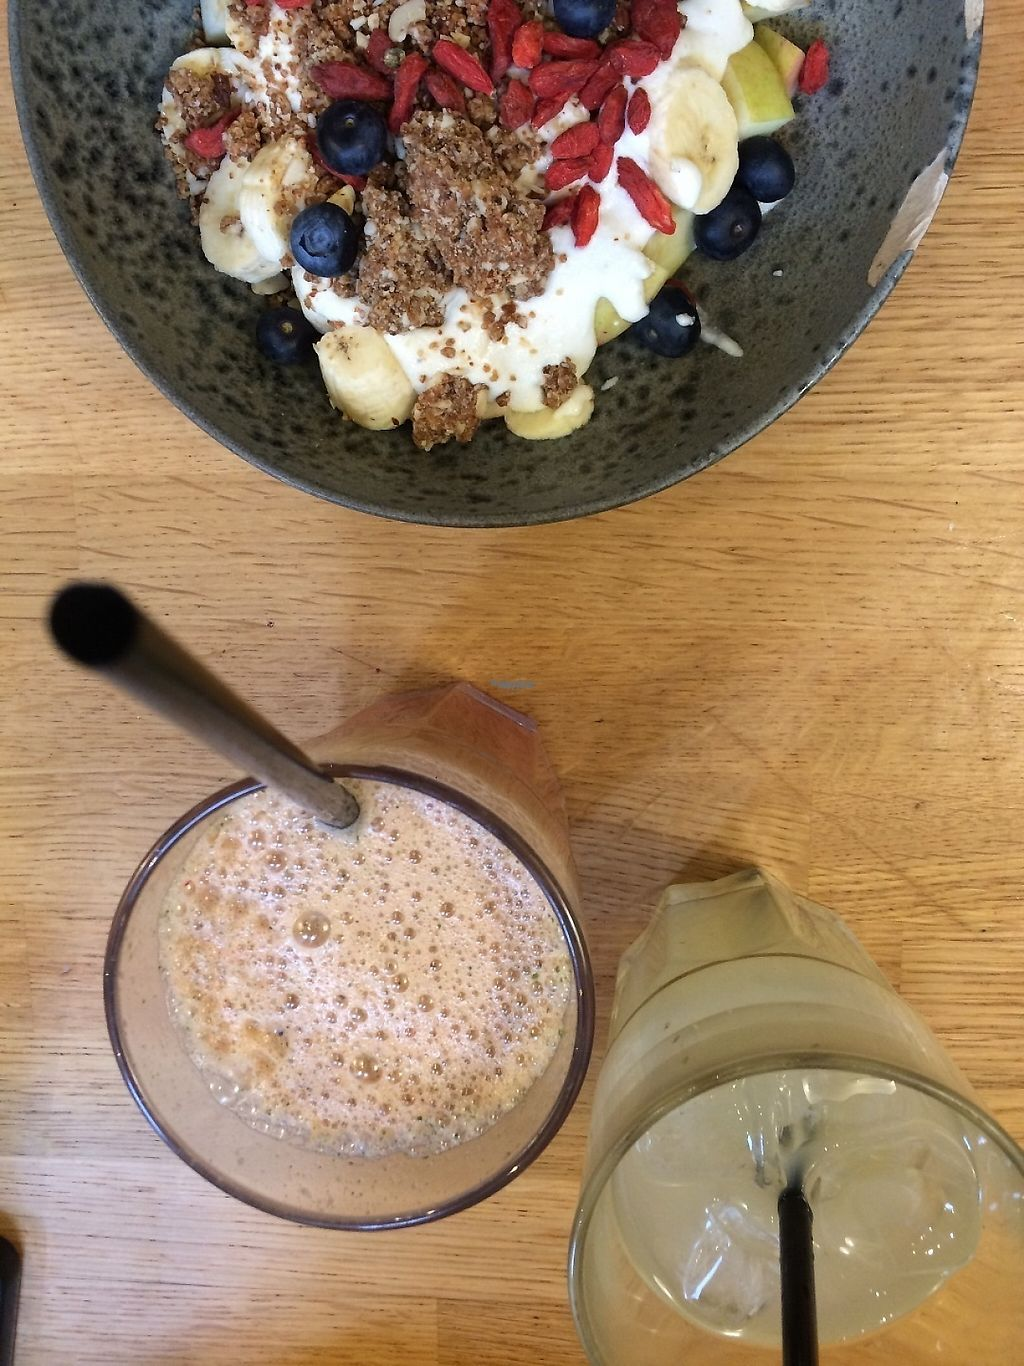 """Photo of 42 Degrees Raw - Pilestaede  by <a href=""""/members/profile/JohanneJeppesen"""">JohanneJeppesen</a> <br/>A juice from the delightful juice selection at 42 Degrees Raw  <br/> January 18, 2017  - <a href='/contact/abuse/image/20746/213013'>Report</a>"""